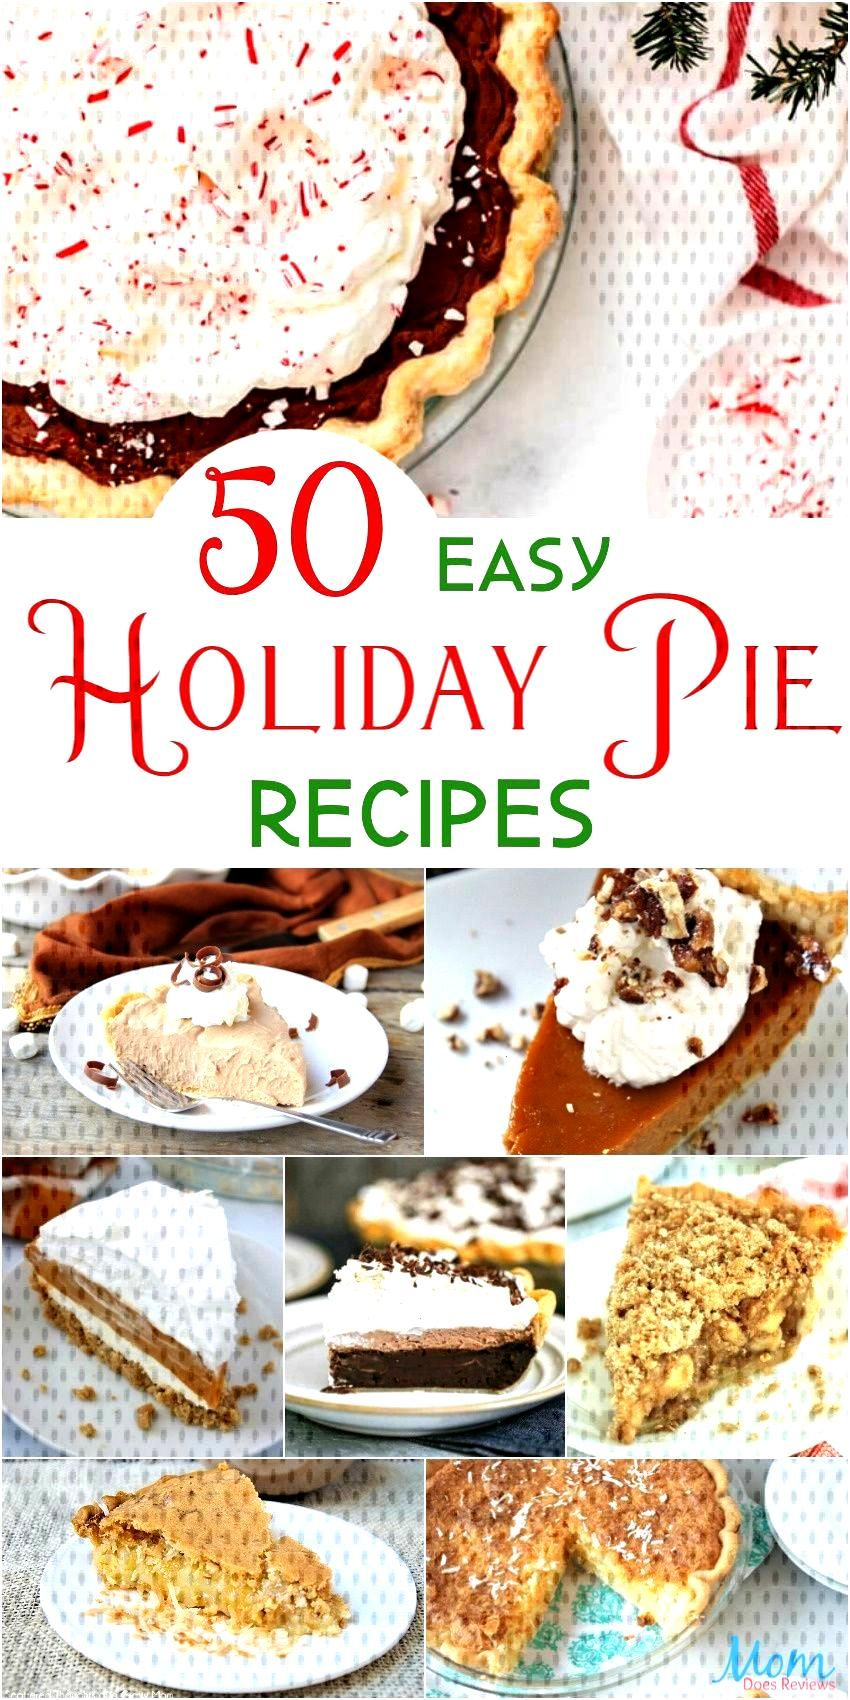 50 Easy Holiday Pie Recipes for a Sweet ...